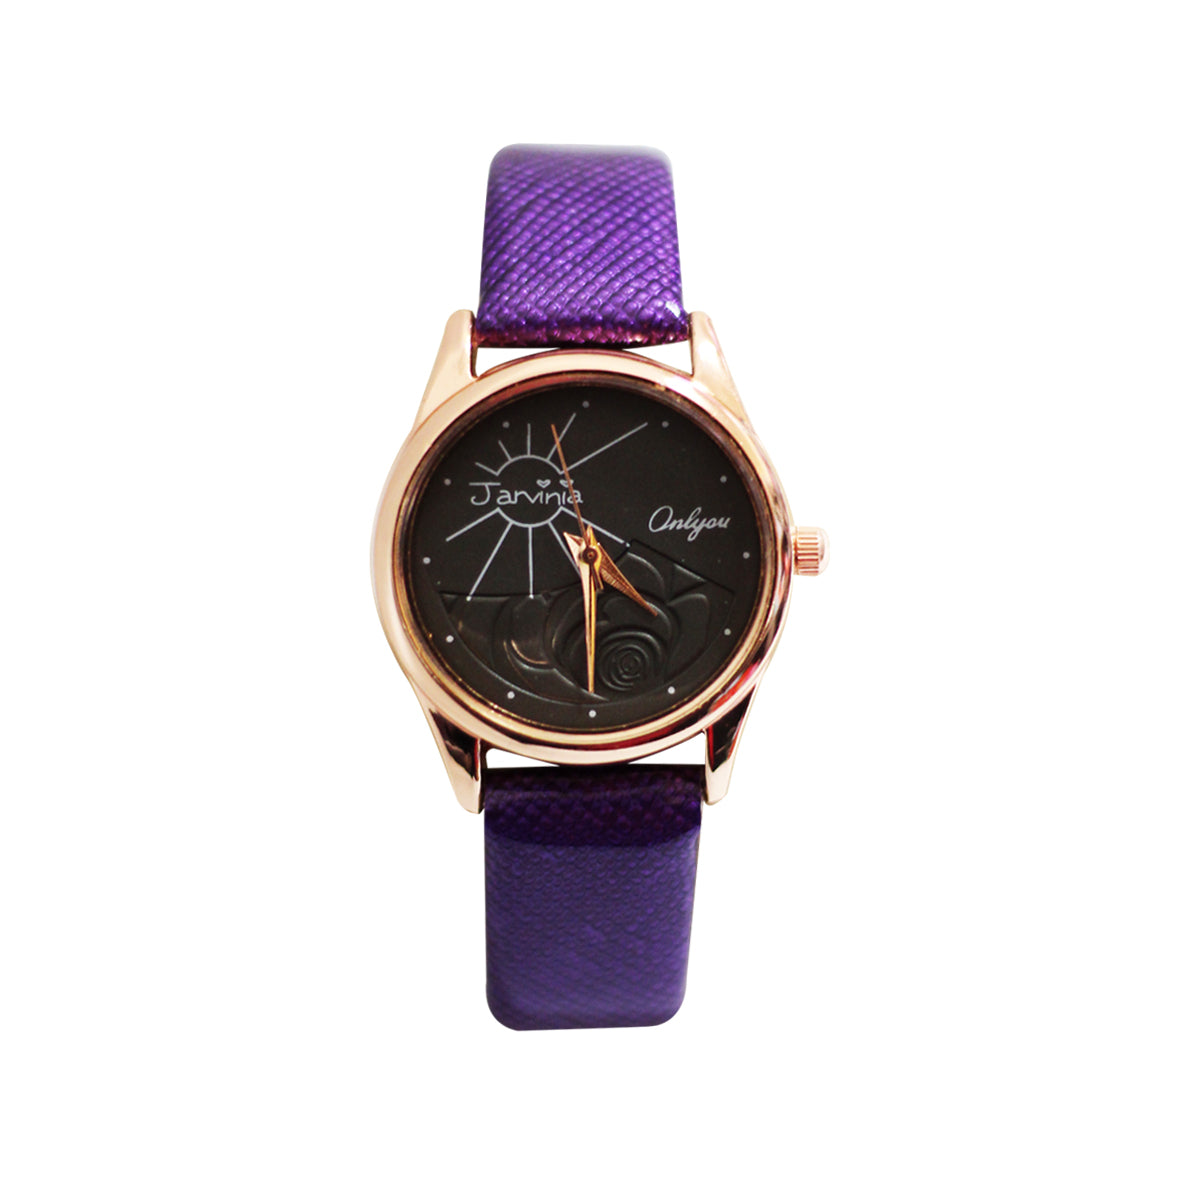 Onlyou Casual Analog Leather Watch For Women - Purple